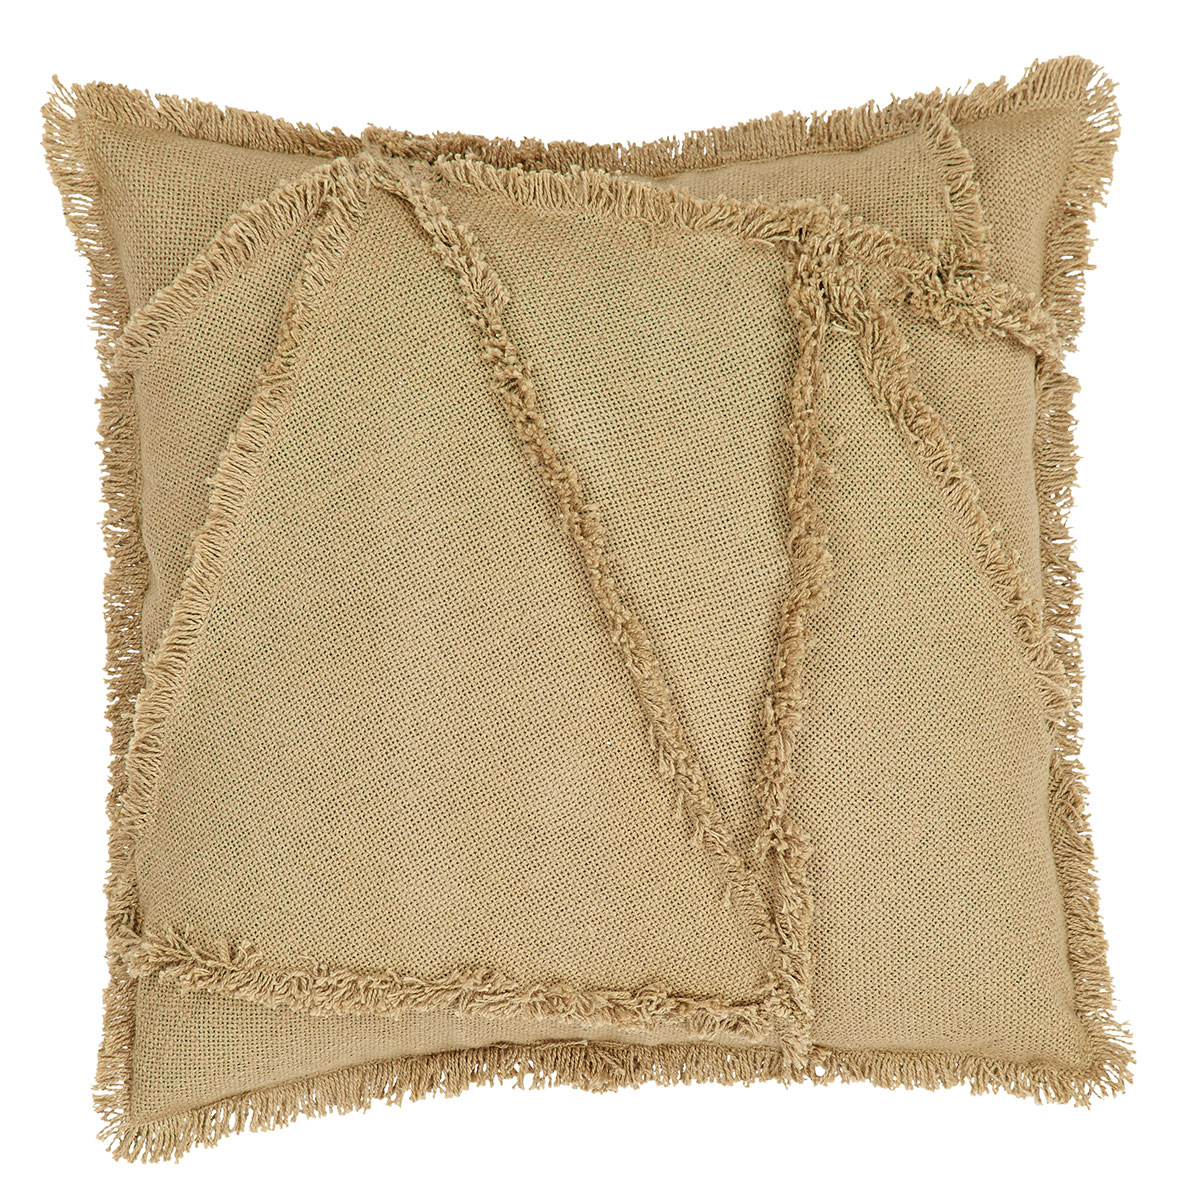 VHC-18324-Burlap-Natural-Reverse-Seam-Patch-Pillow-Cover-LRG